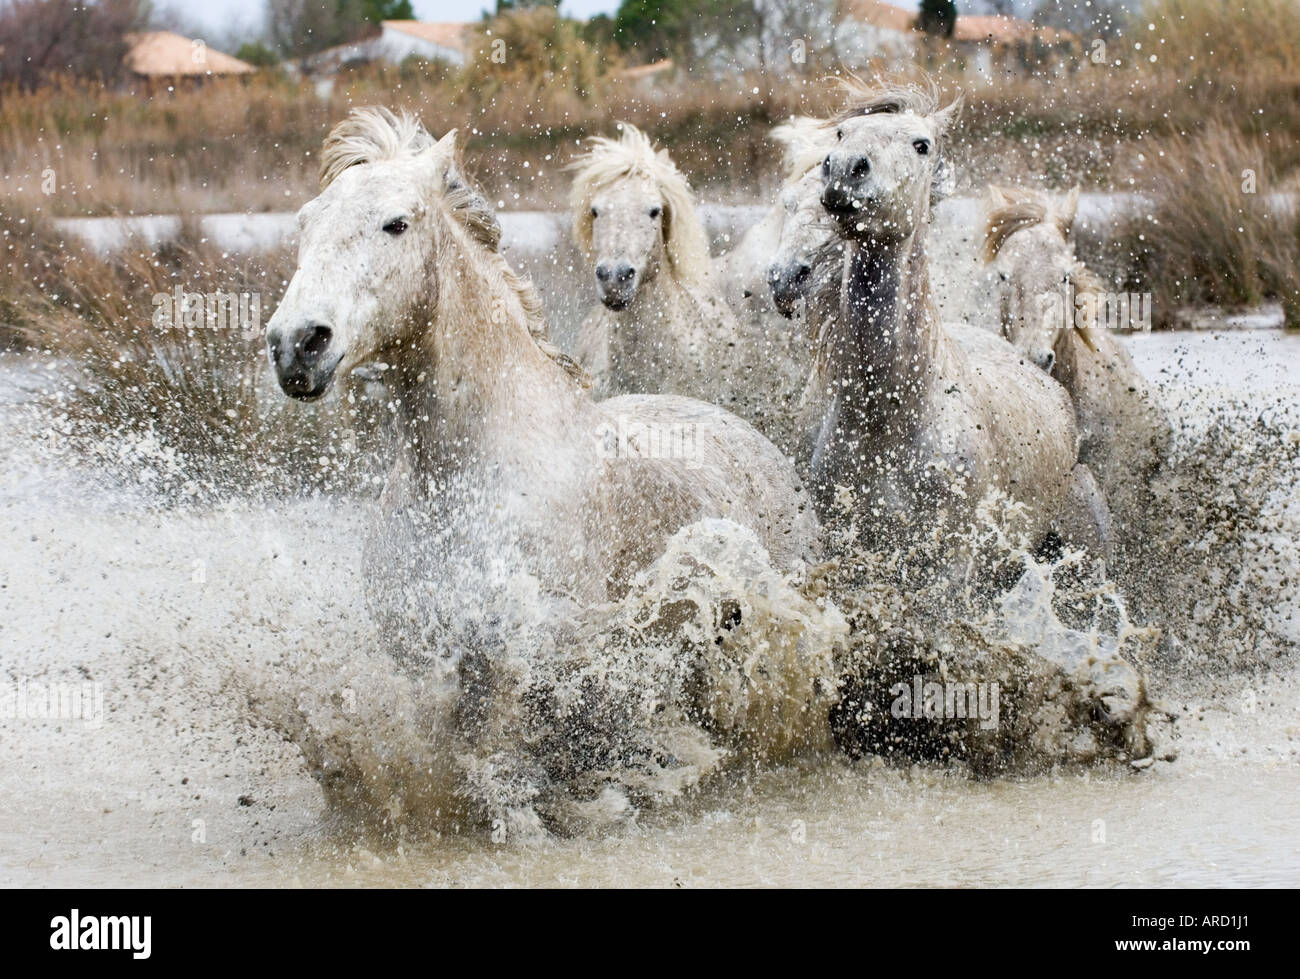 Camargue White Horses (stallions) charging through water, Camargue, Provence, France - Stock Image